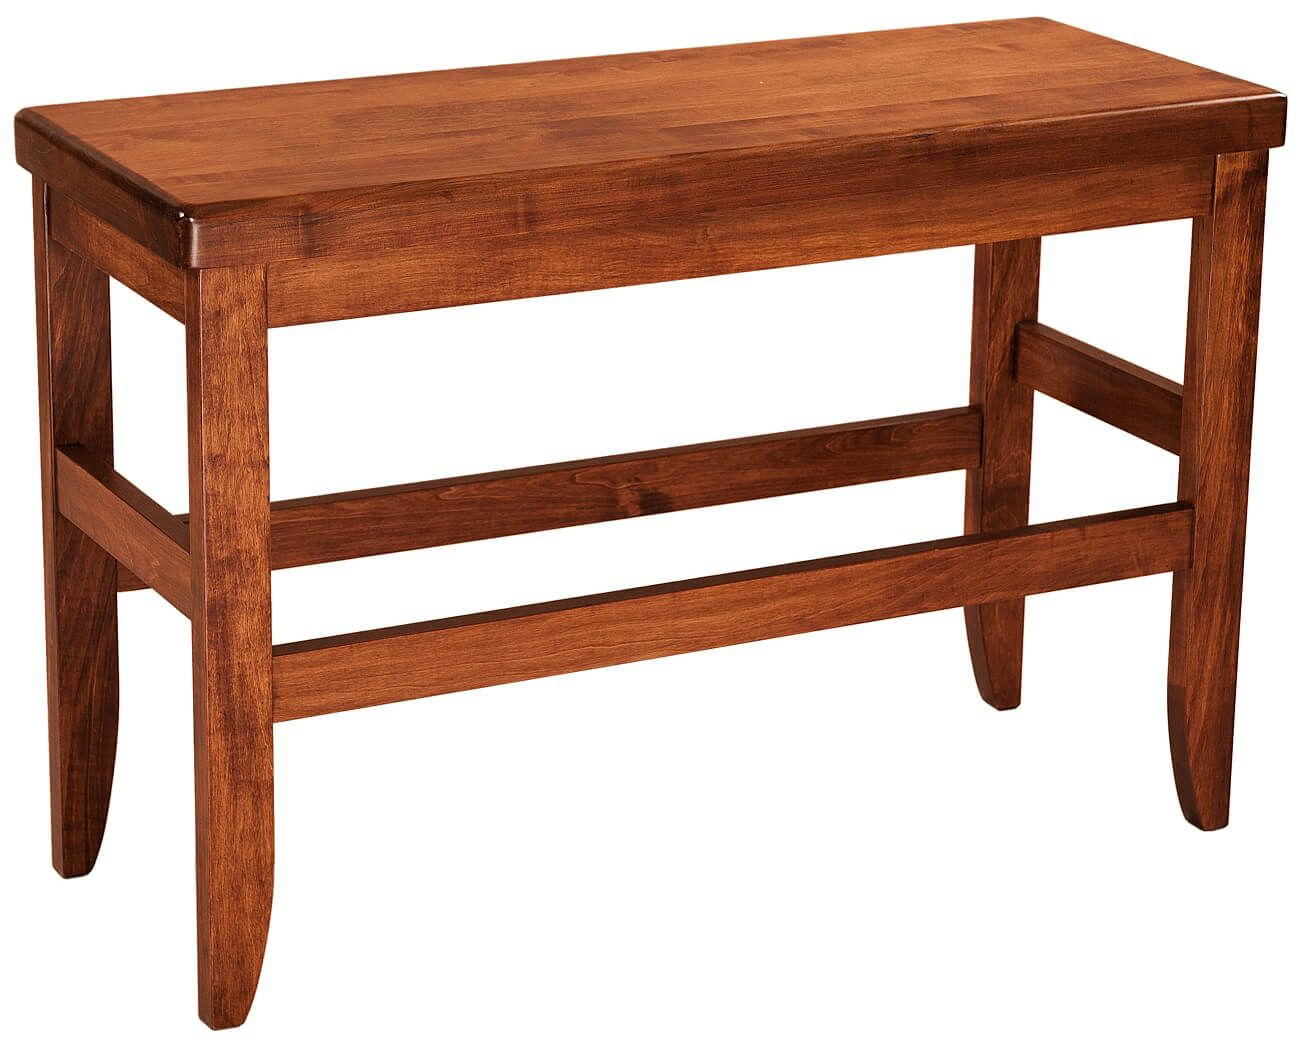 height of kitchen bench traveling sibbick bar countryside amish furniture